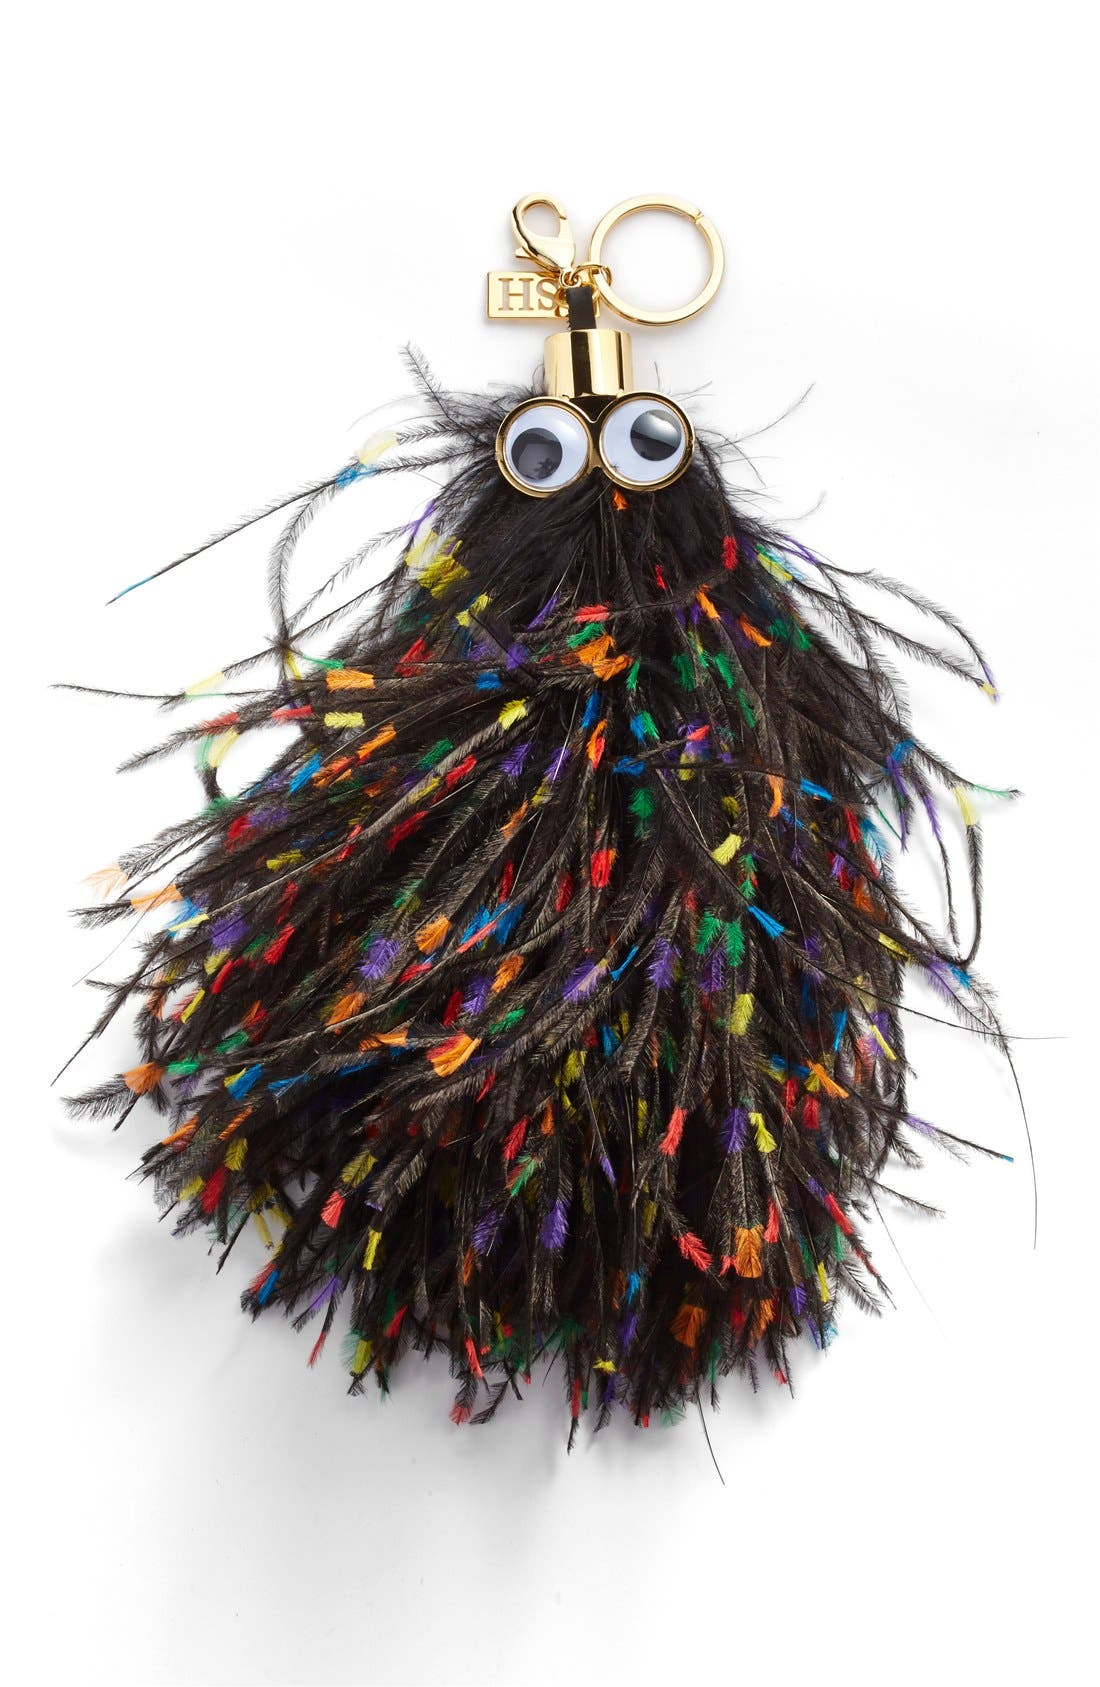 Alternate Image 1 Selected - Sophie Hulme 'George' Feather Bag Charm